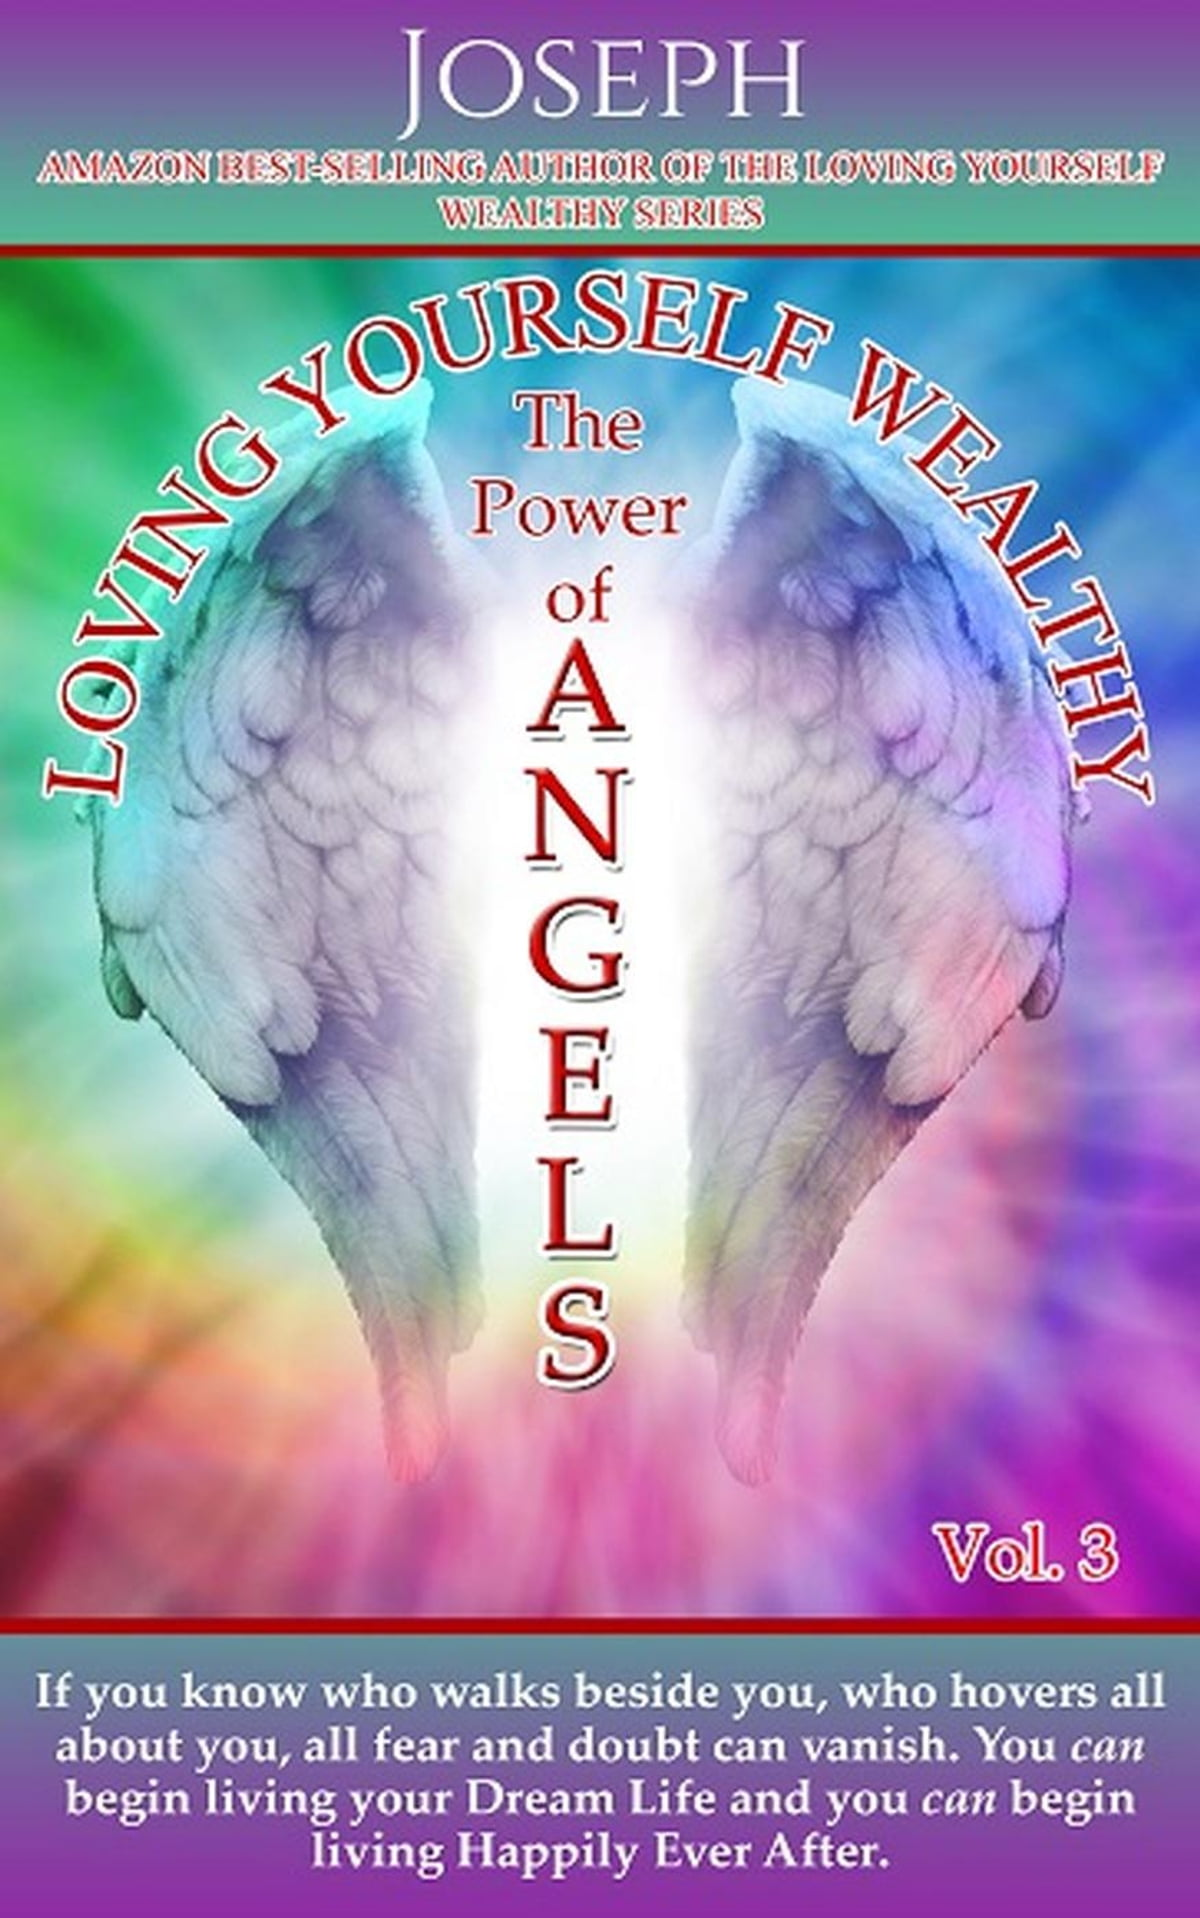 Loving Yourself Wealthy Vol 3 The Power Of Angels Ebook By Joseph